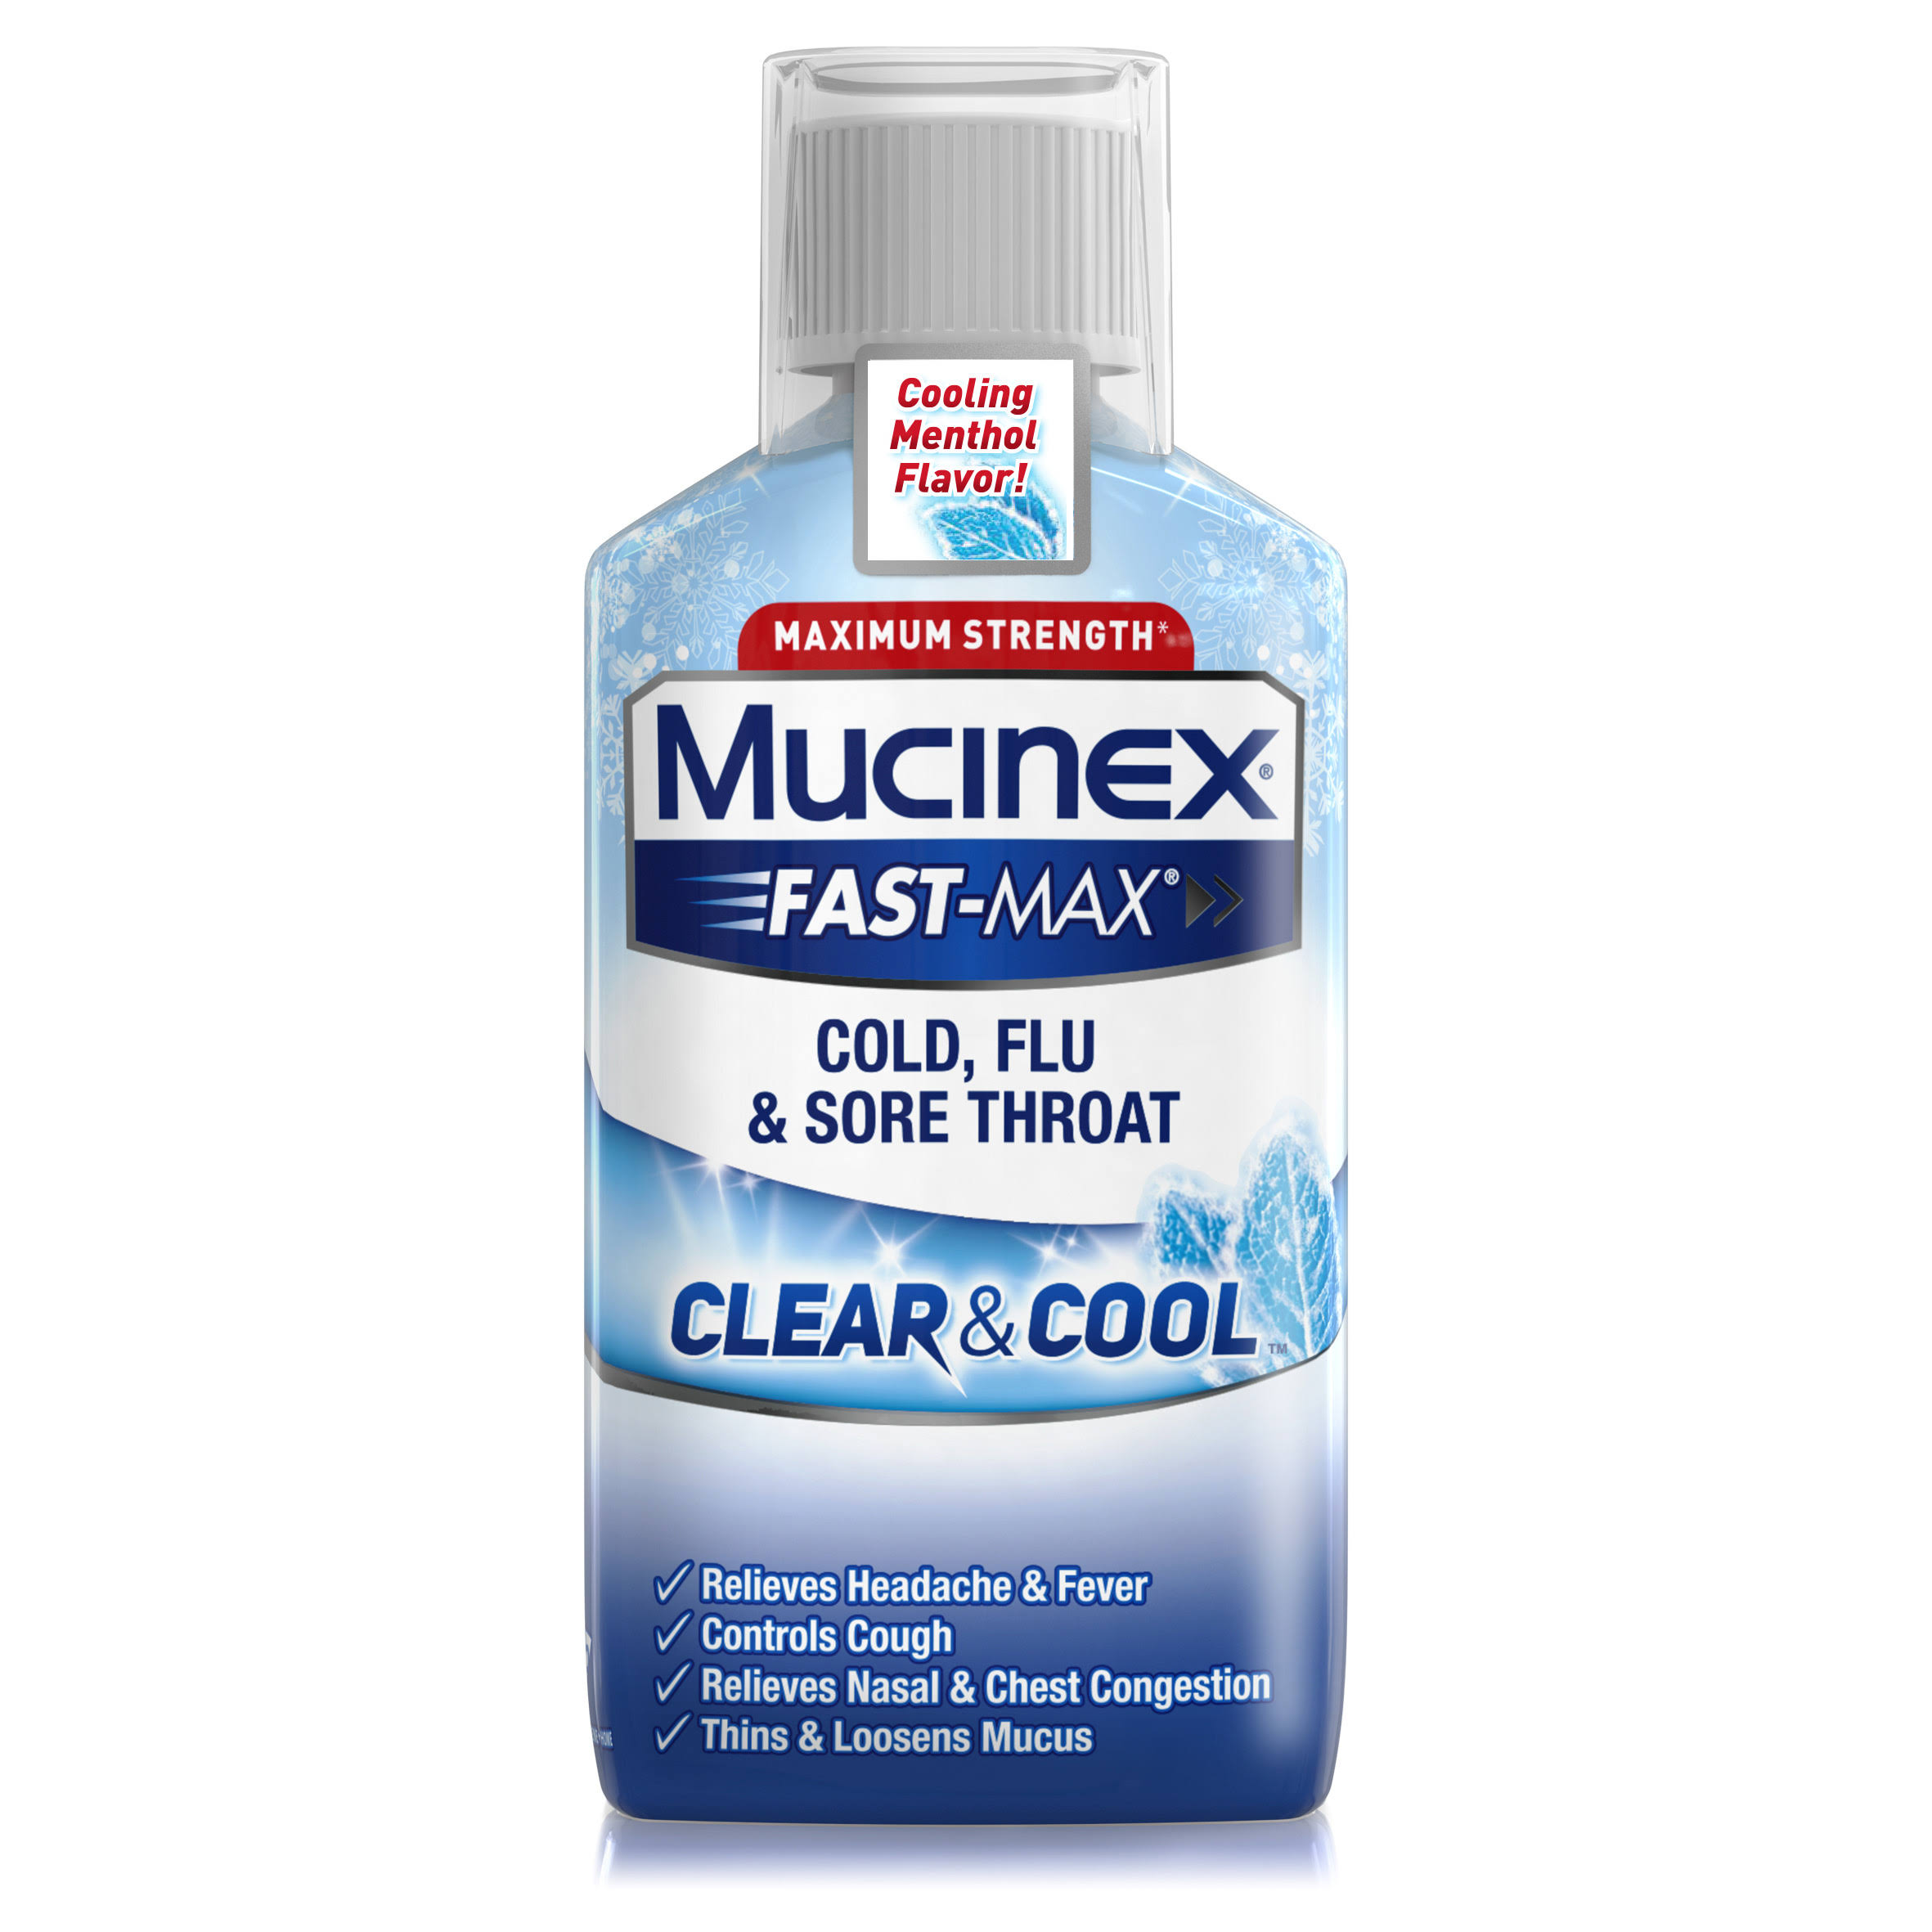 Mucinex Fast-max Clear & Cool Throat Liquid - 6oz